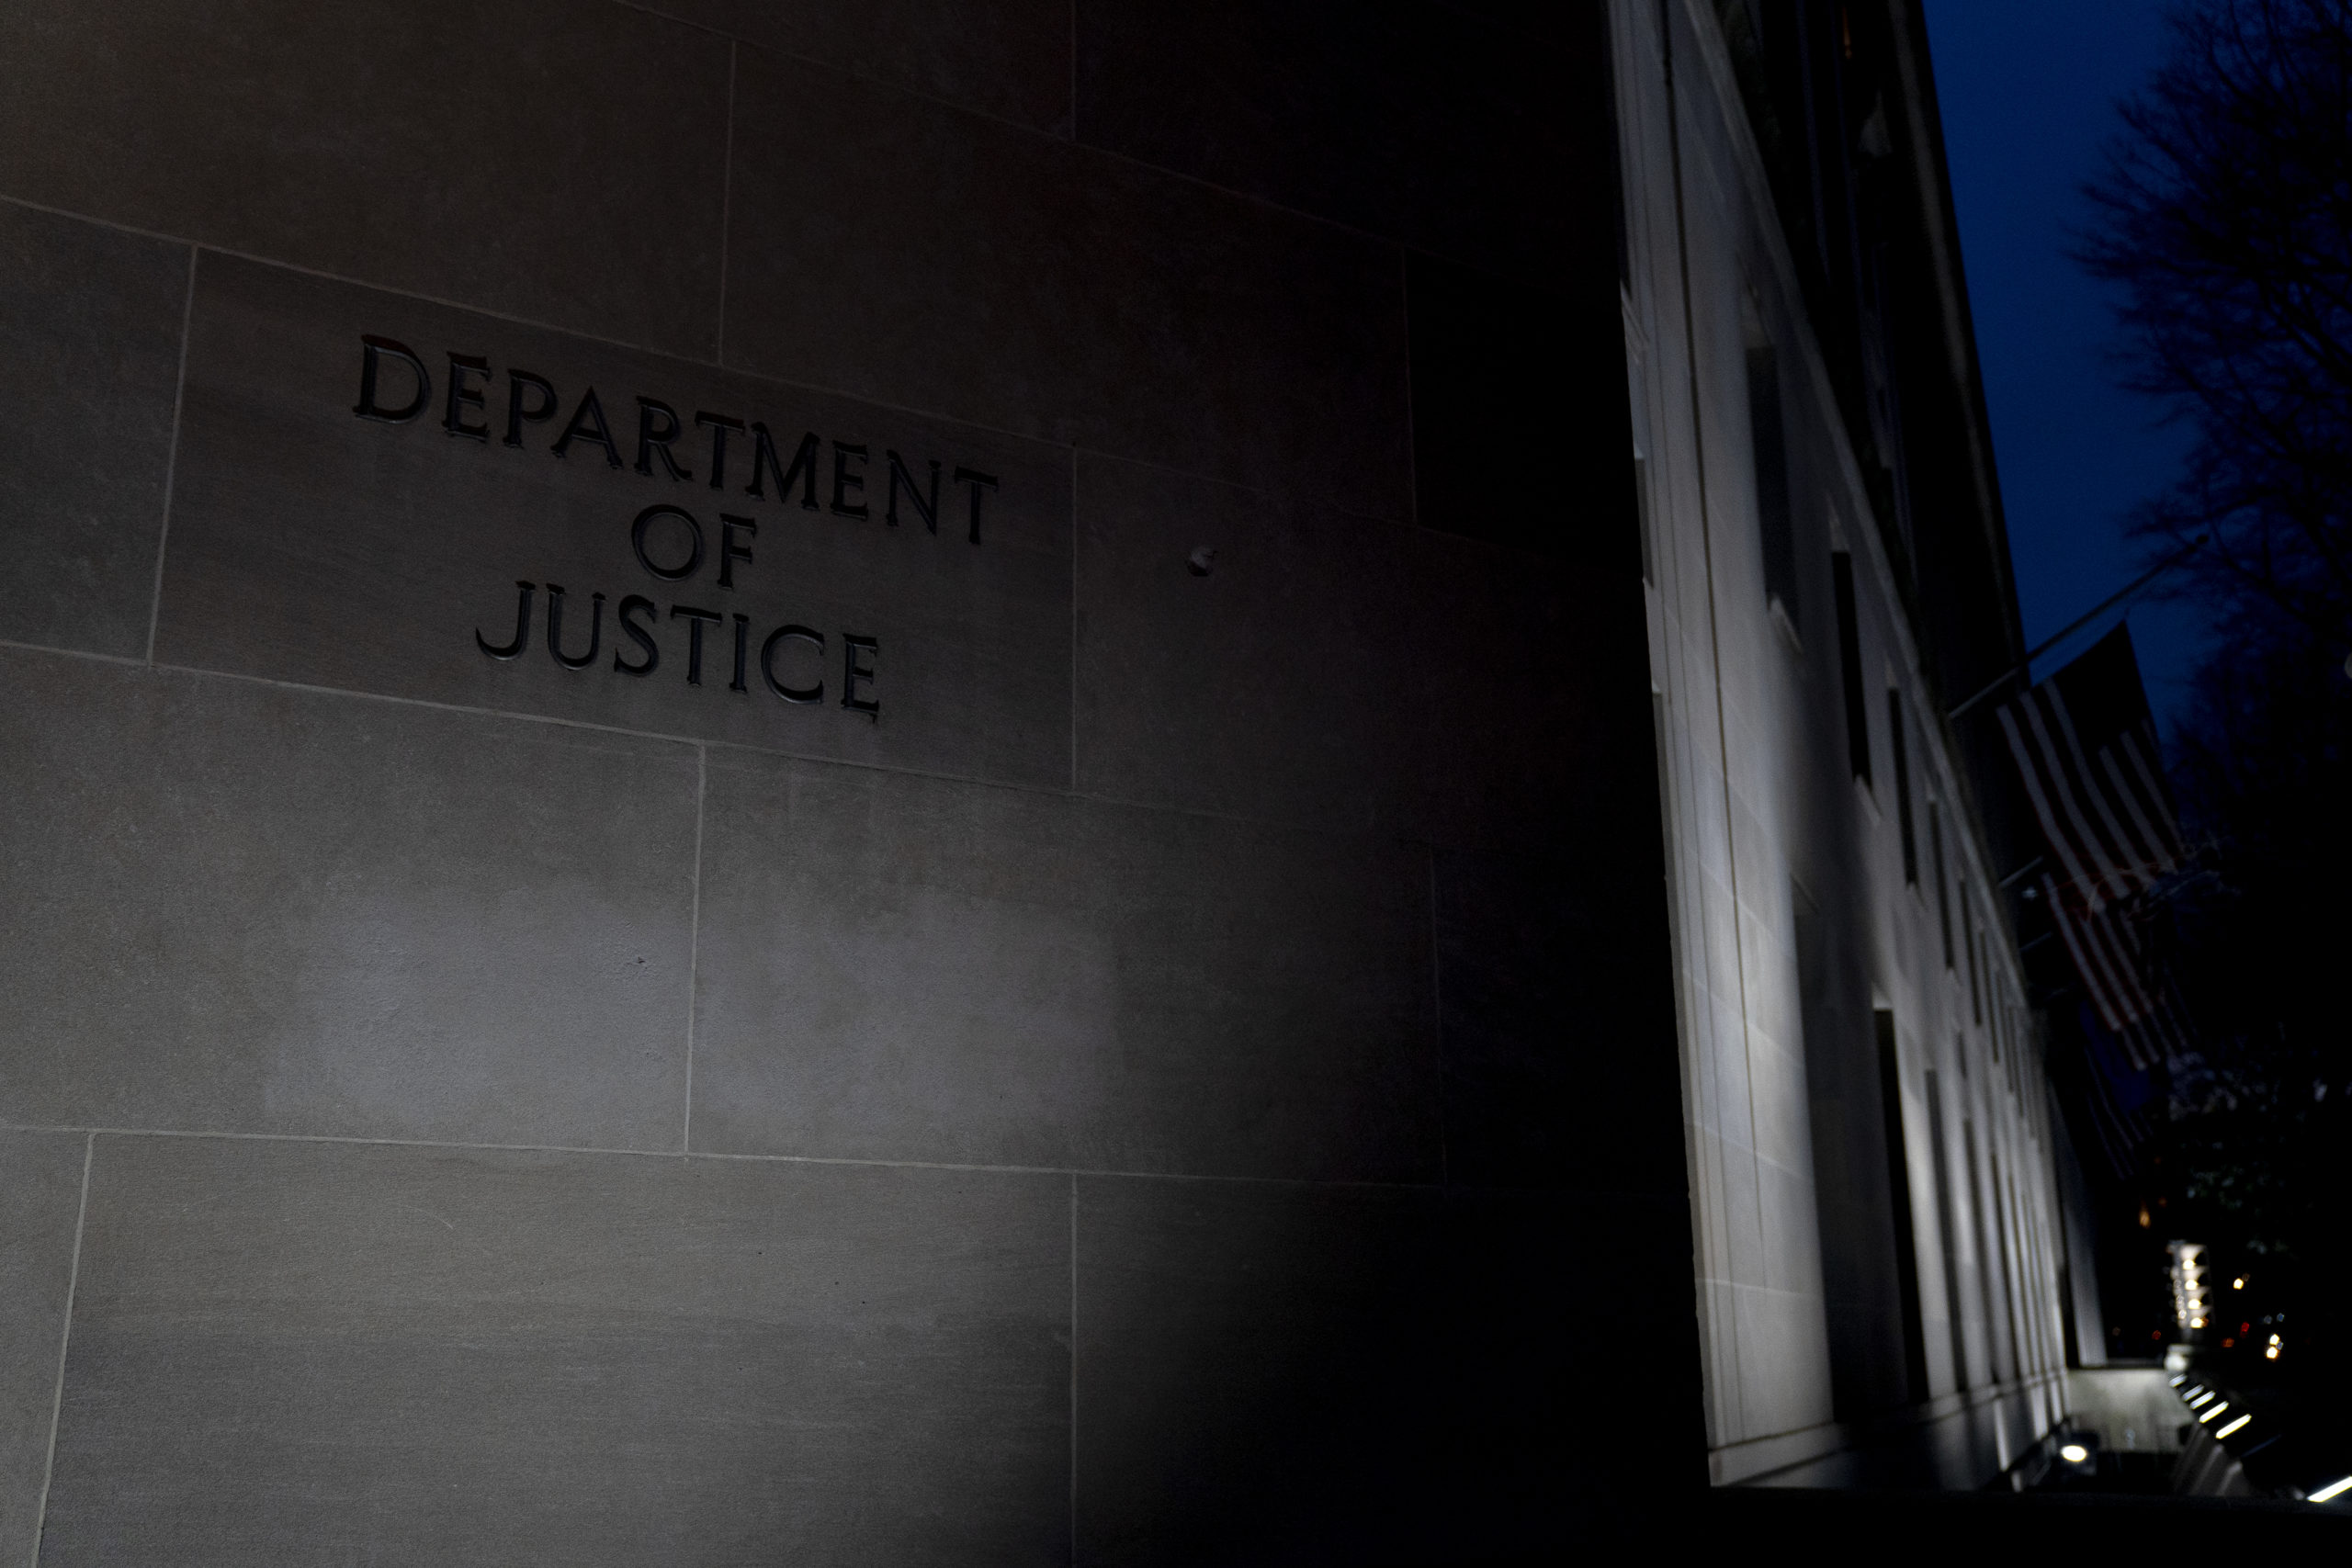 WASHINGTON, DC - JANUARY 11: The Department of Justice (DOJ) building on January 11, 2021 in Washington, DC. The Department of Justice has charged several participants involved in breaching the U.S. Capitol, interrupting the counting of electoral college votes, on Wednesday. (Photo by Stefani Reynolds/Getty Images)